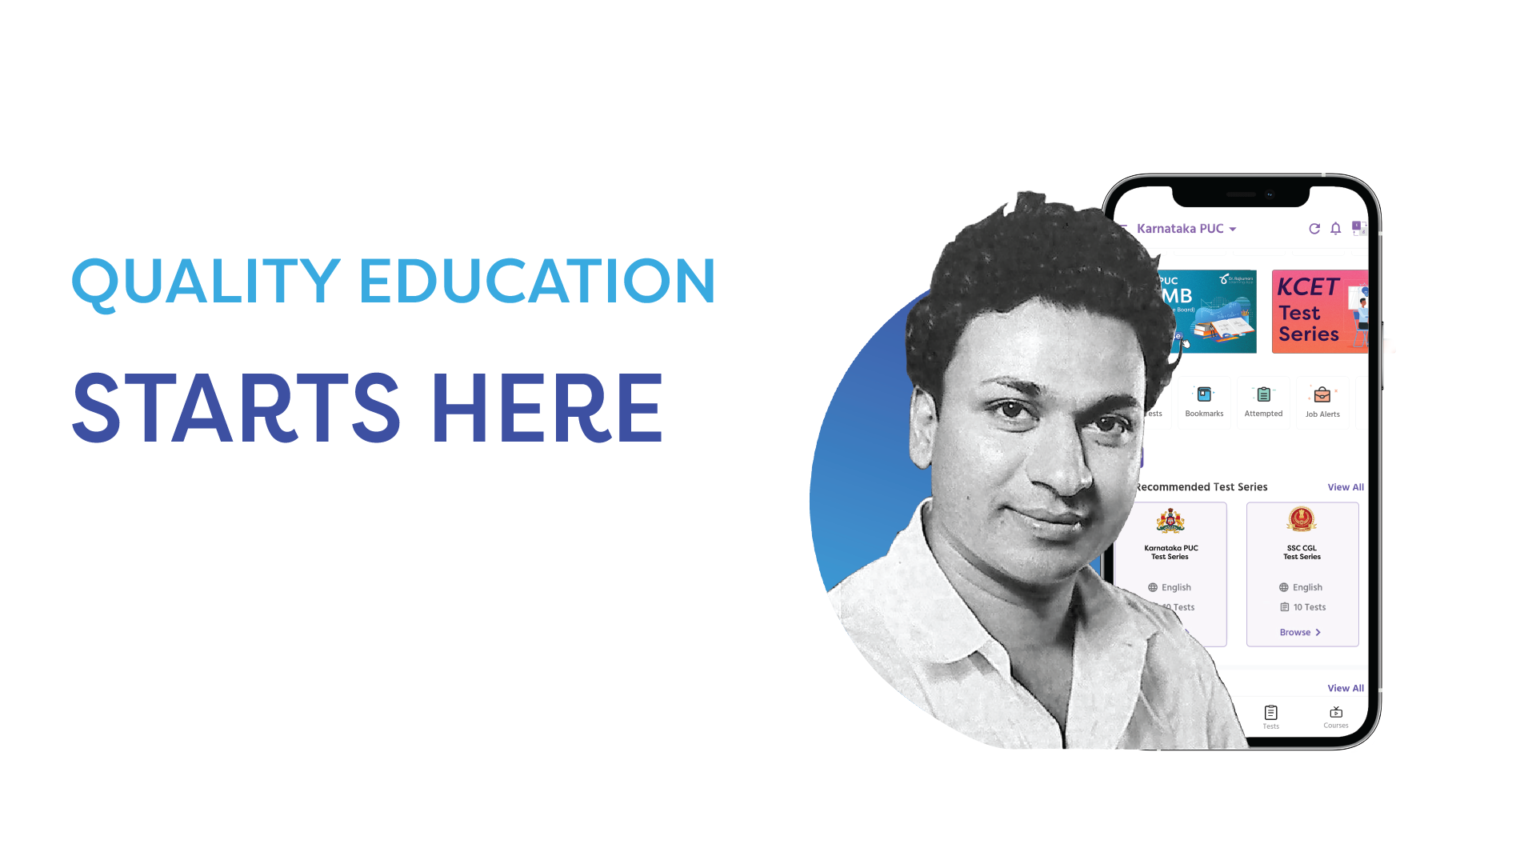 Dr Rajkumar's Learning App, a research-based on-line education platform is here to make quality learning affordable and accessible.